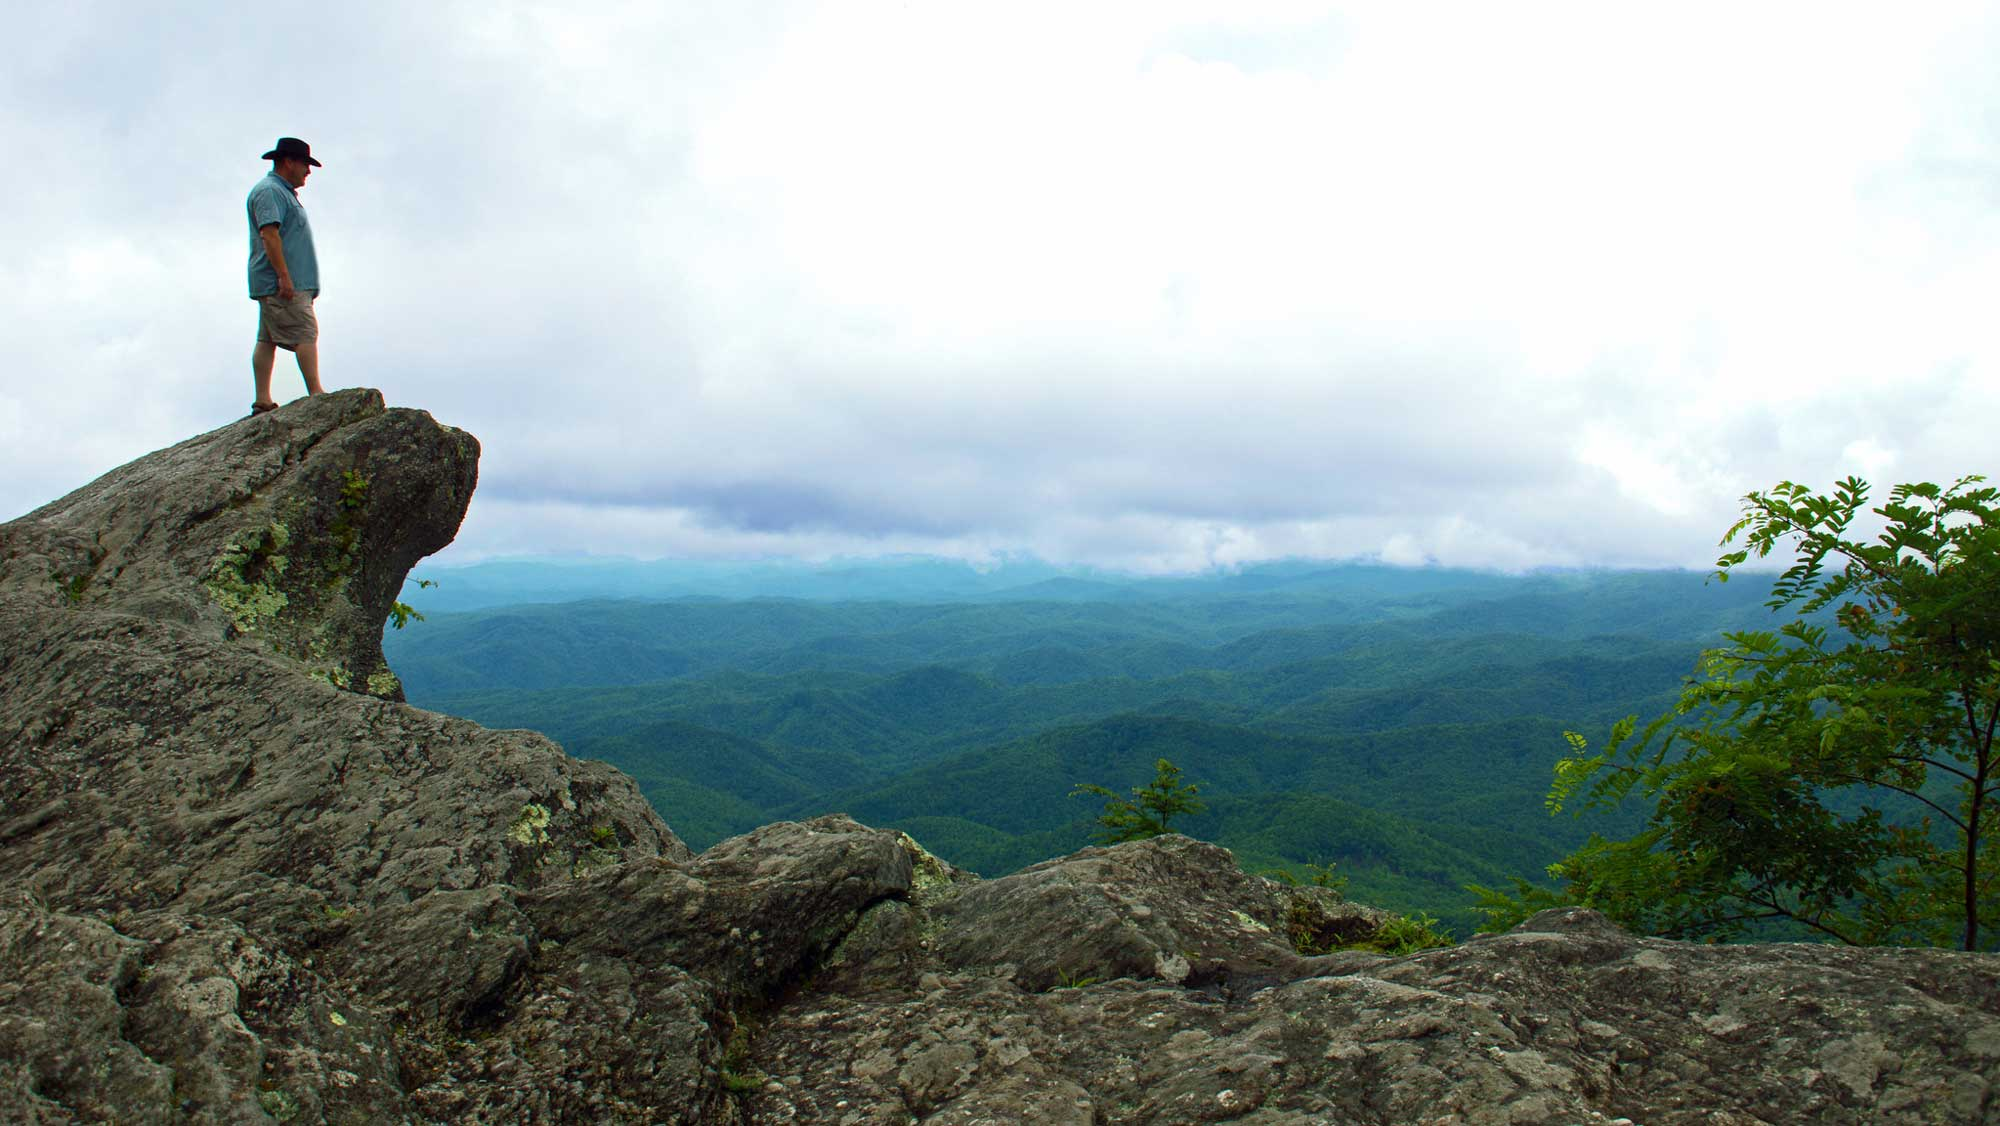 Photograph of a man standing on the Blowing Rock.